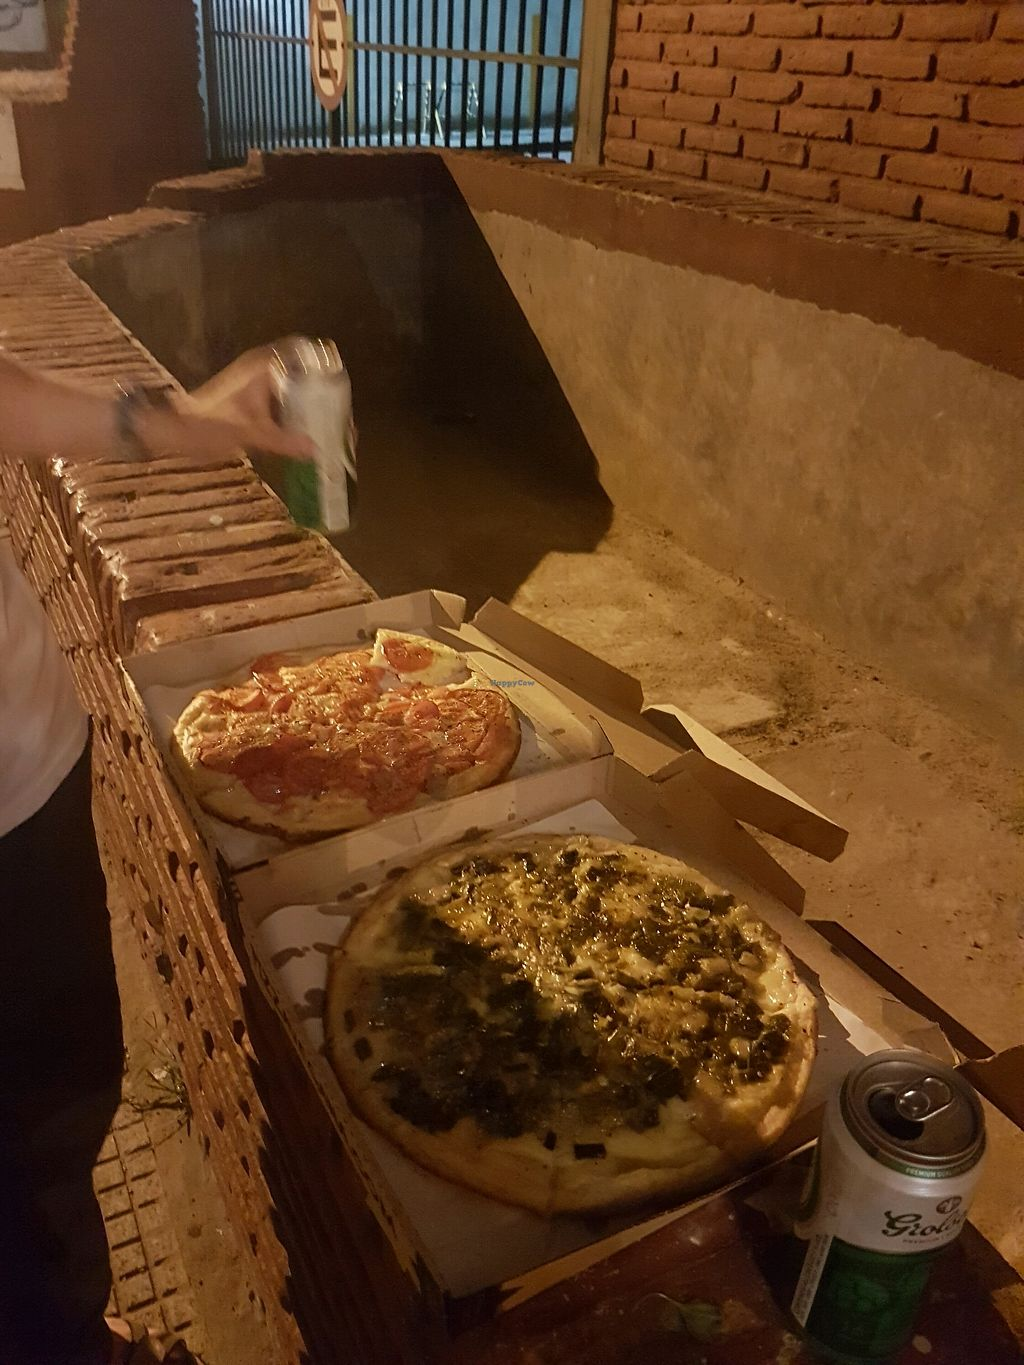 "Photo of Pizza Vegana - San Telmo   by <a href=""/members/profile/Olena"">Olena</a> <br/>pizzas  <br/> April 12, 2018  - <a href='/contact/abuse/image/83905/384660'>Report</a>"